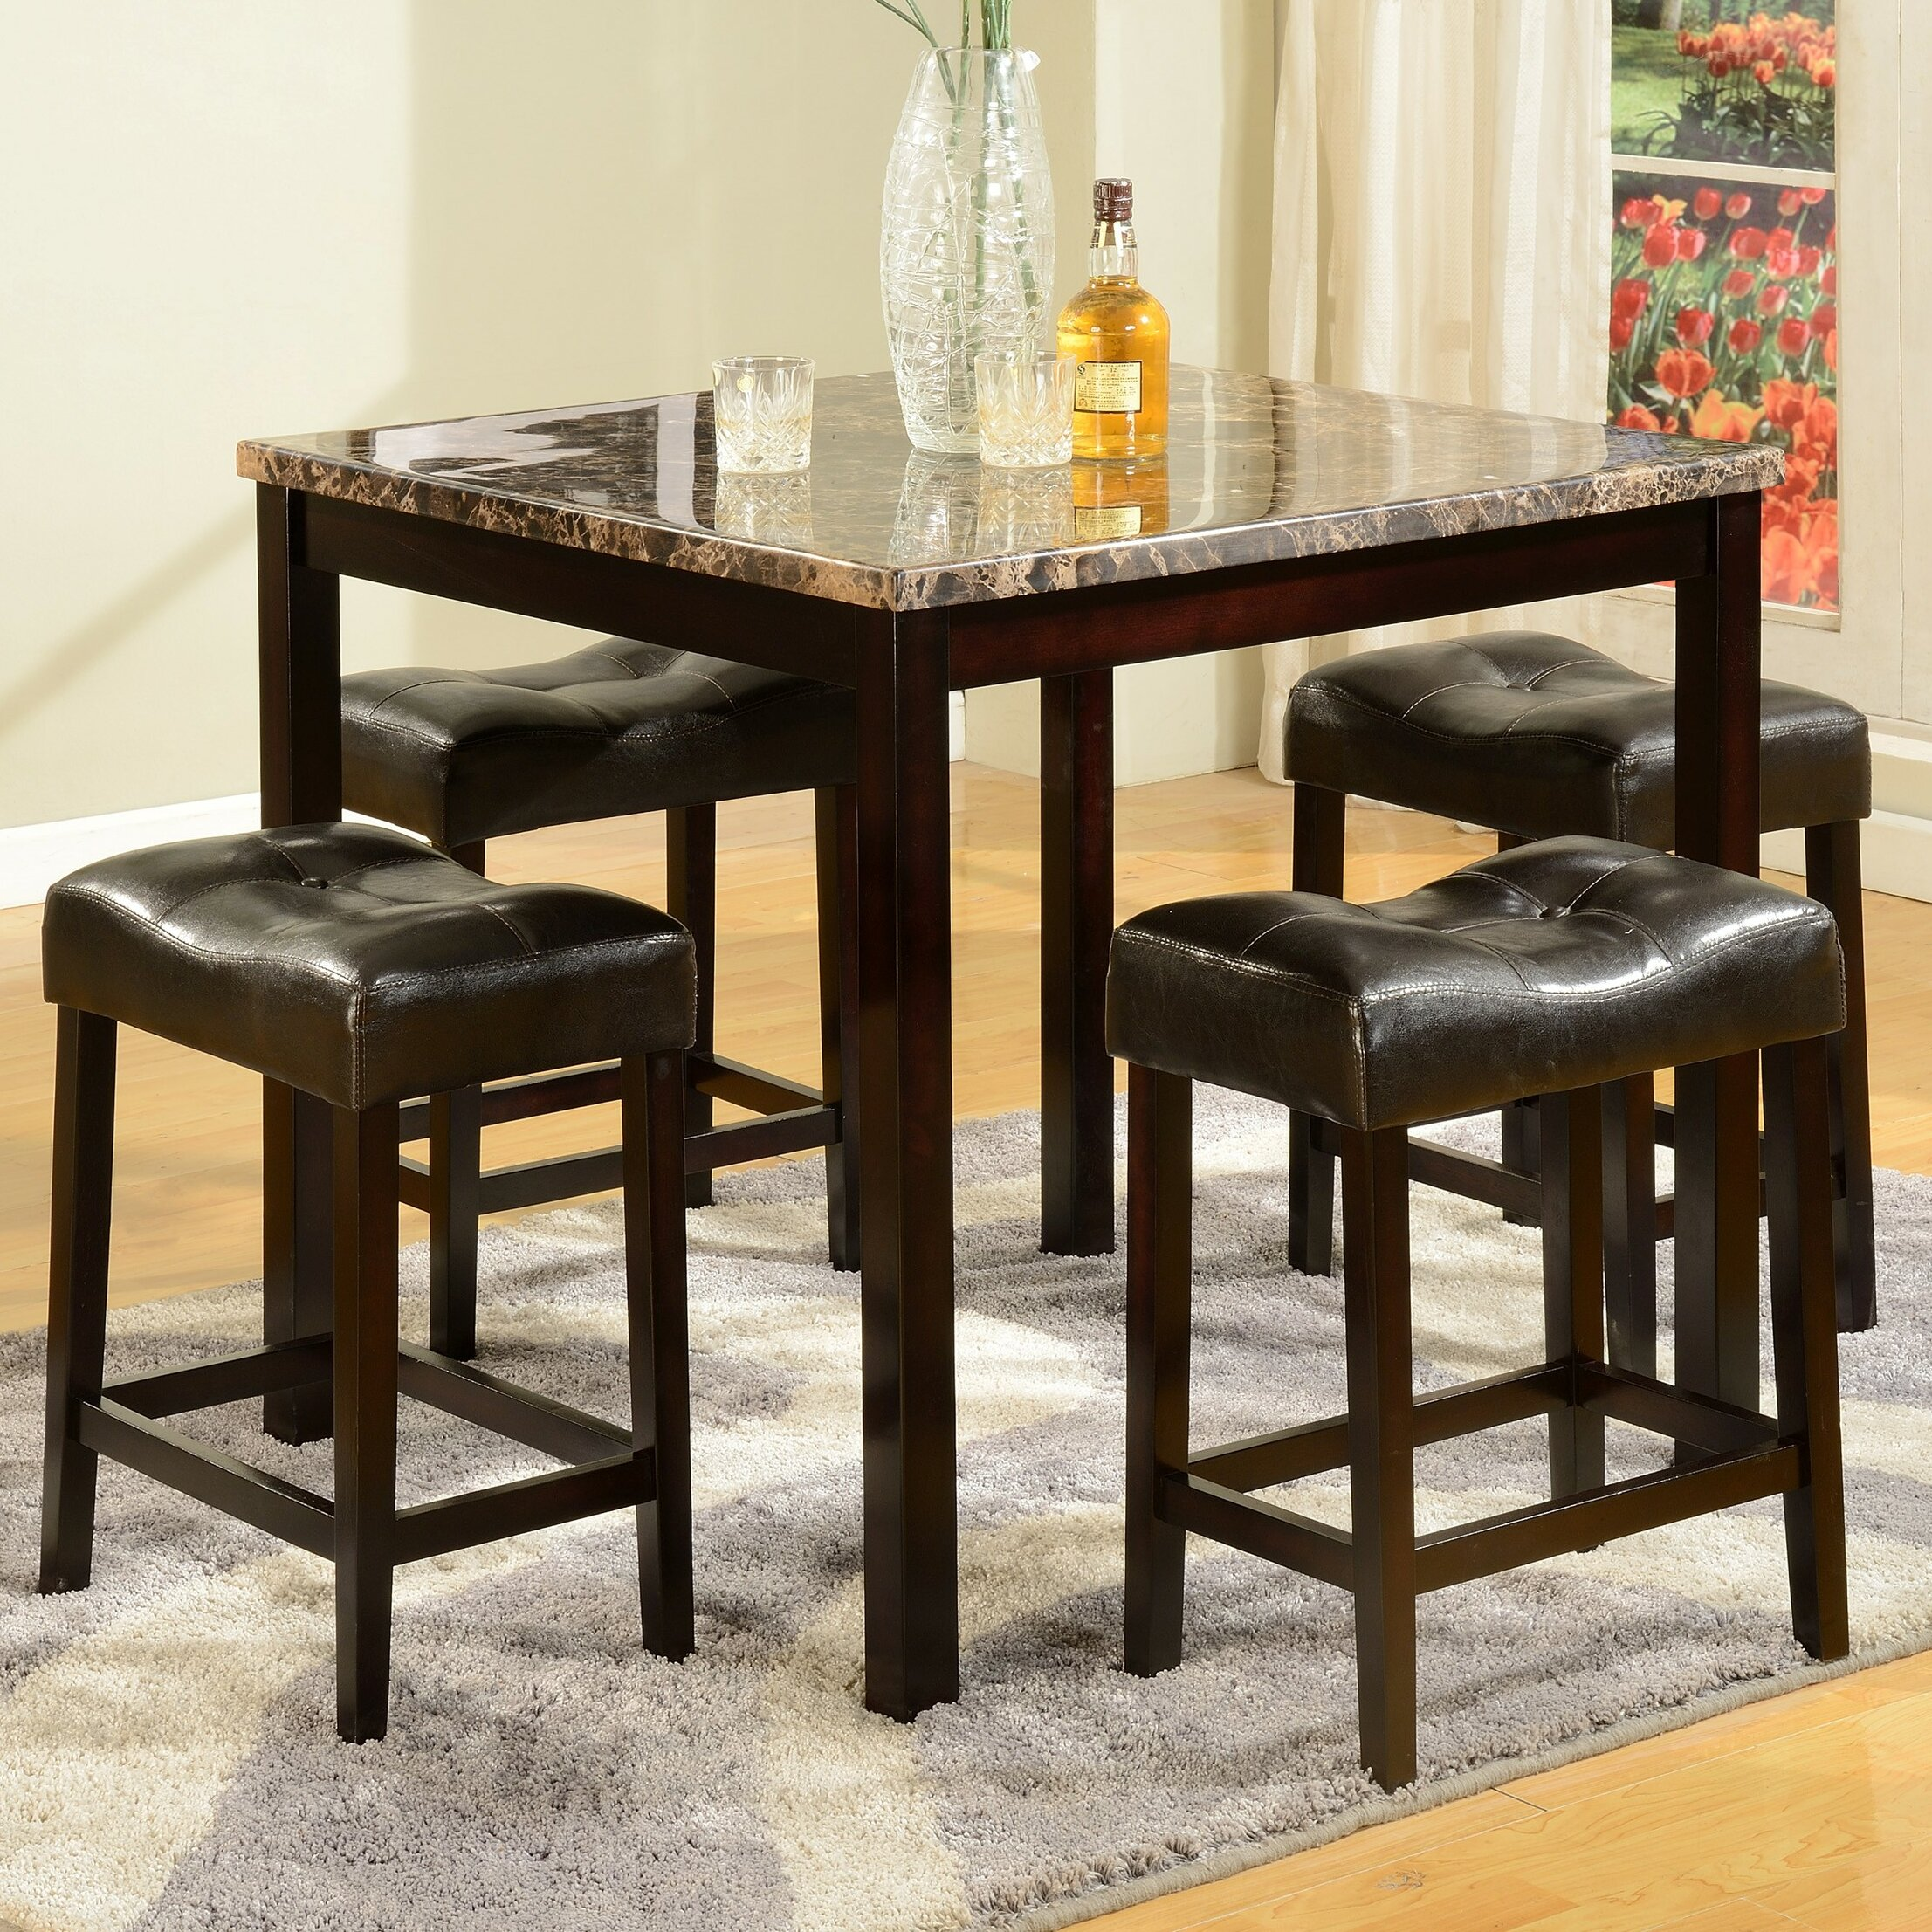 American Furniture Classics 5 Piece Counter Height Pub